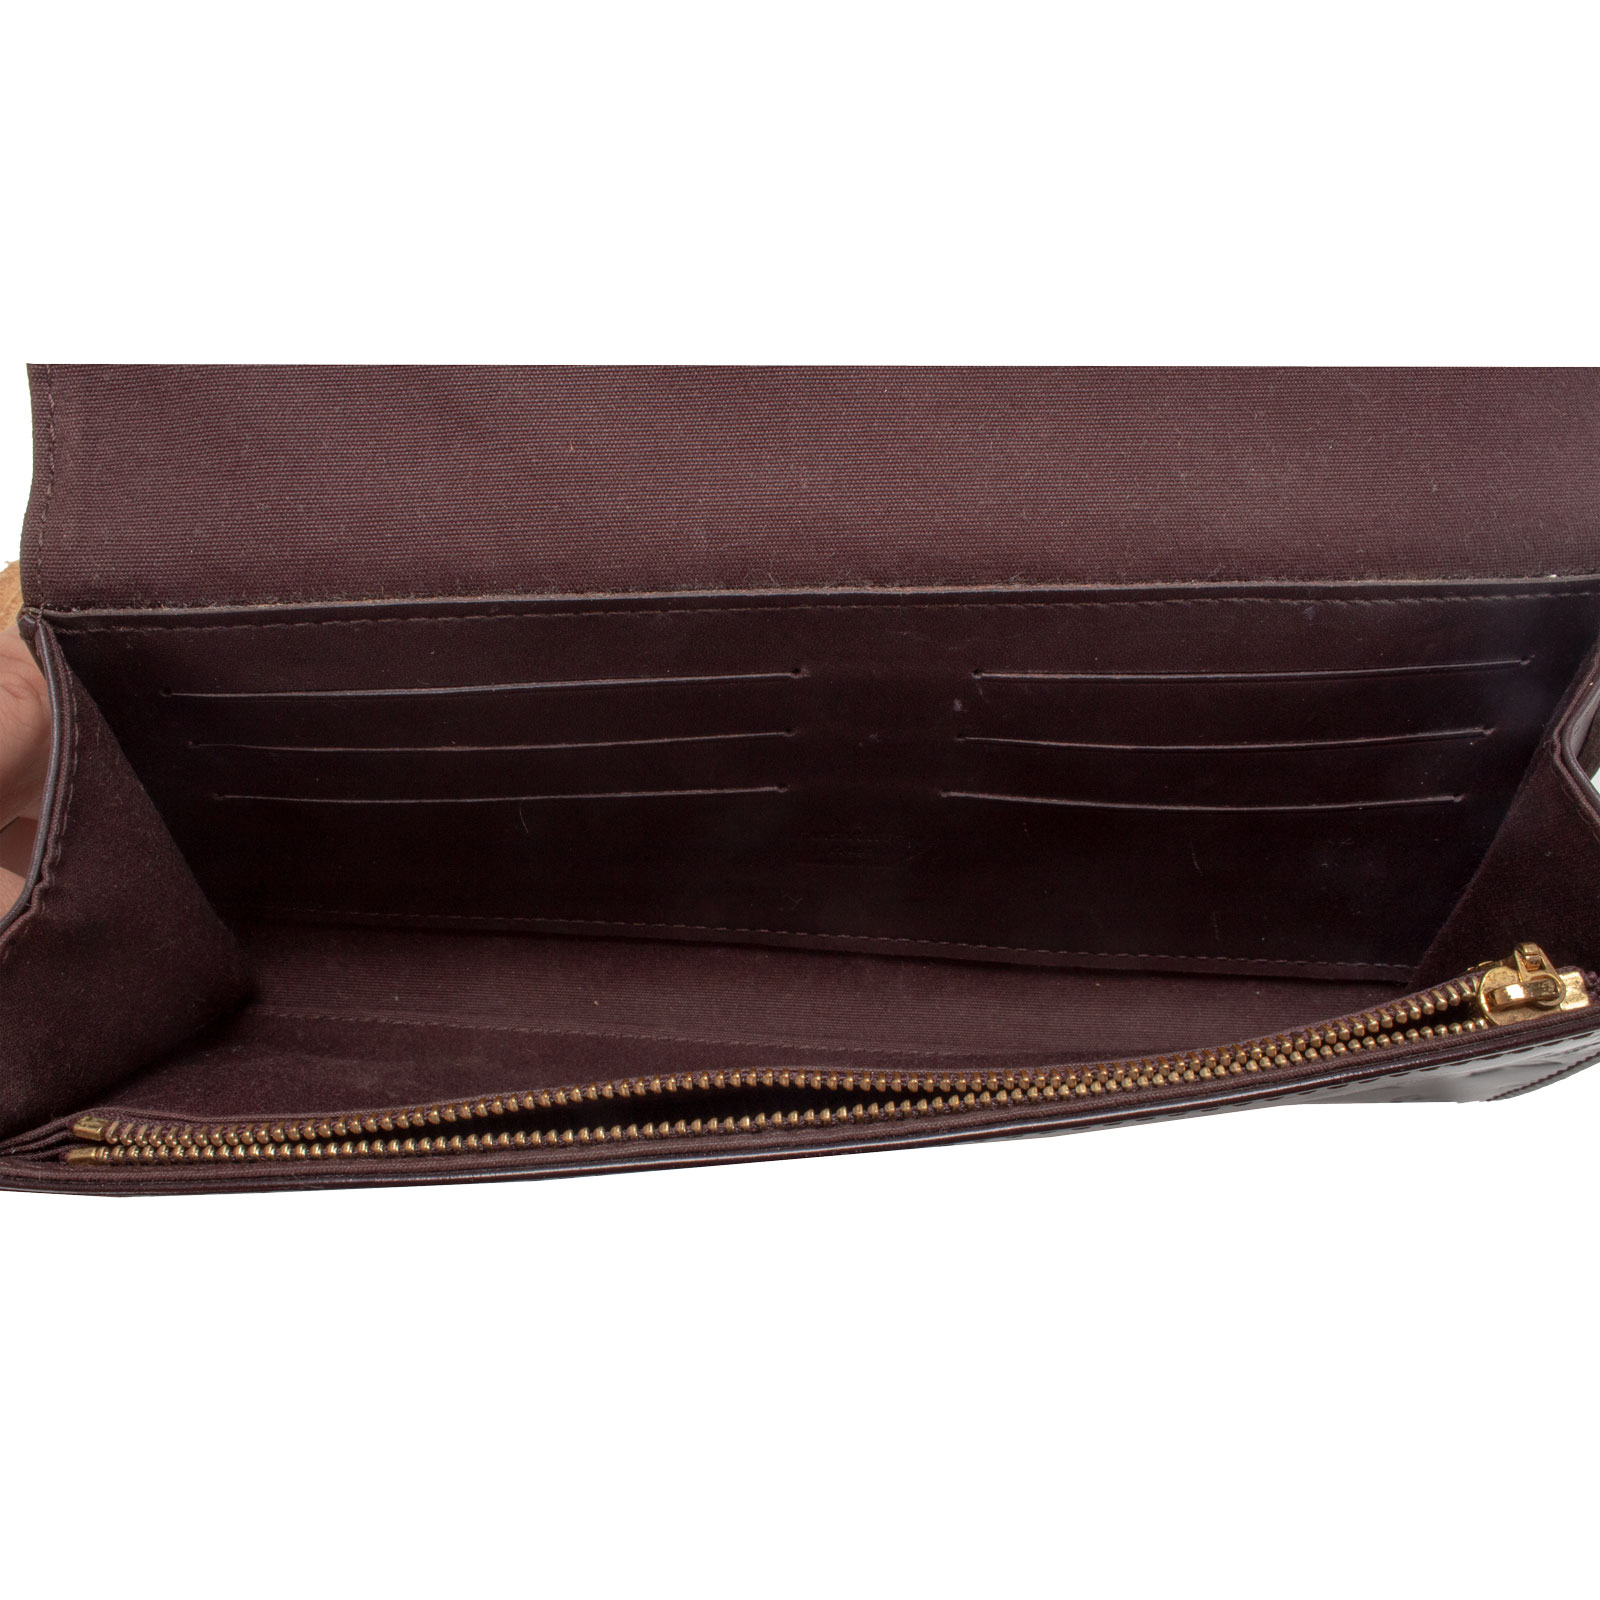 caf83b09e79 Clutch Louis Vuitton Sunset Boulevard